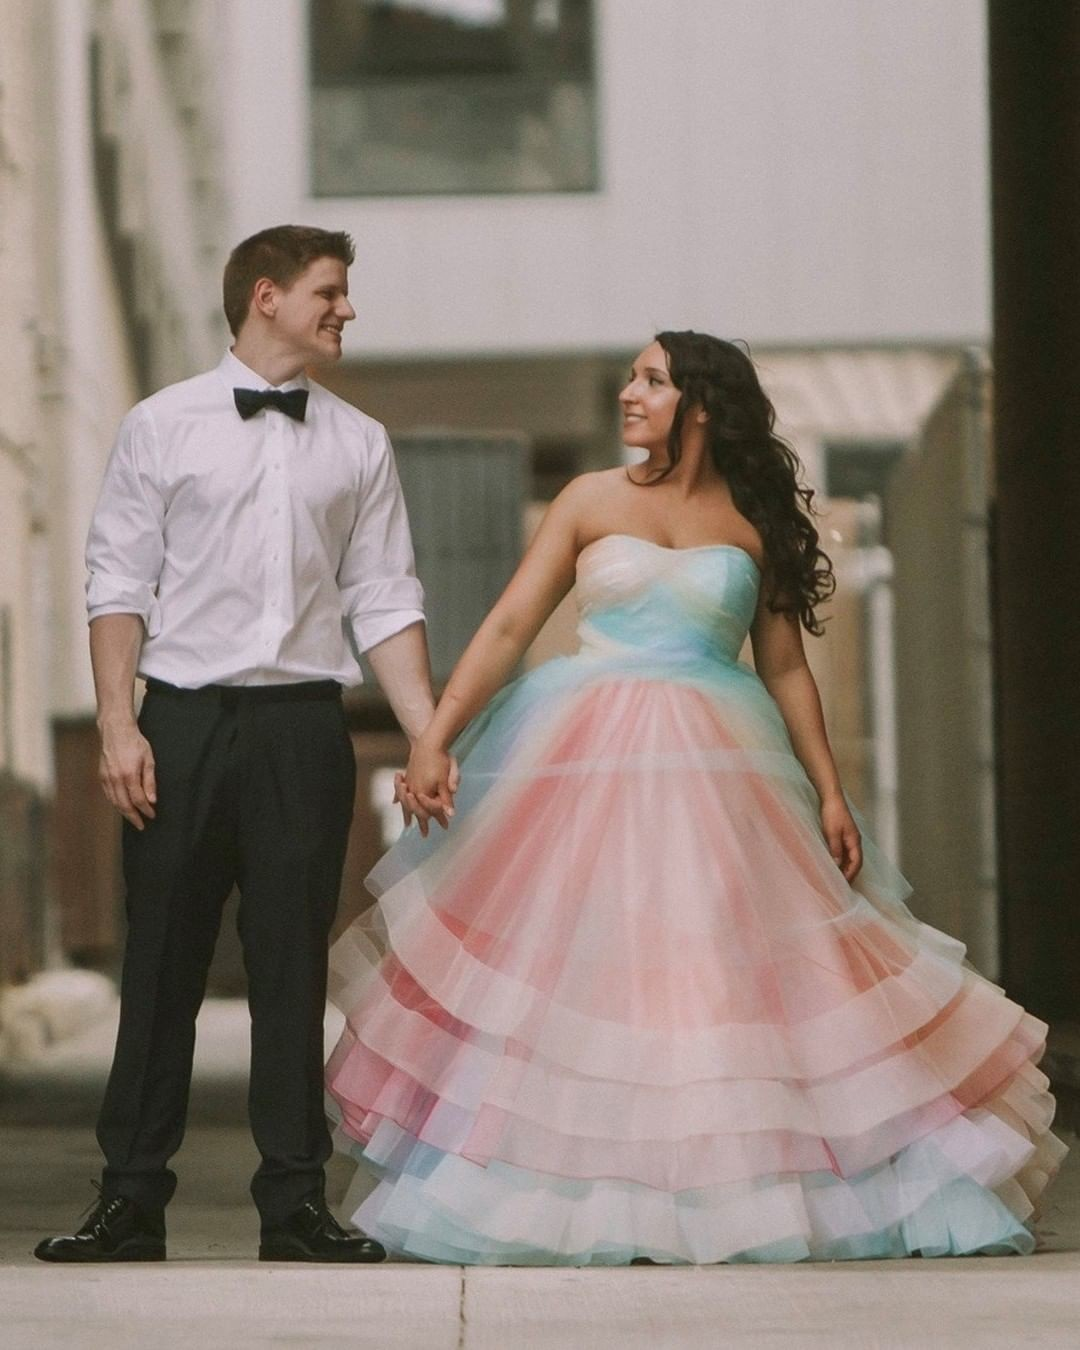 Be creative and bold on your wedding in rainbow shade! 🌈 Are you going to get a colored wedding gown? Any bride who orders a colored